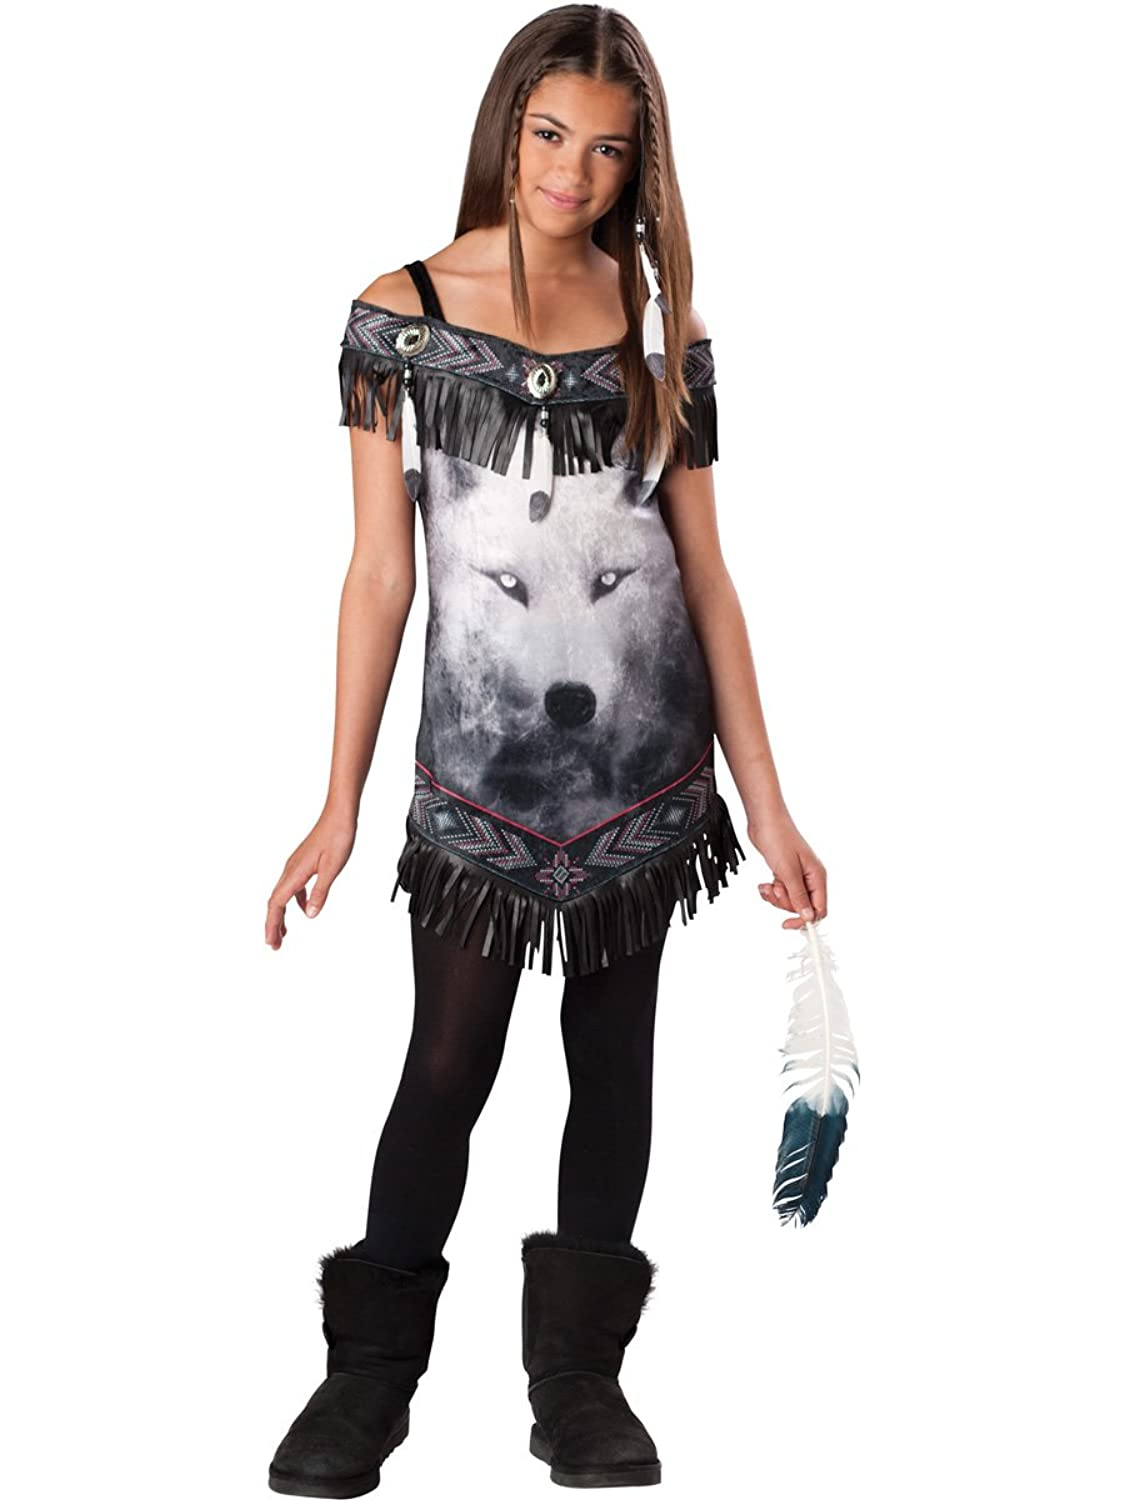 Tribal Spirit Tween Girls Costume